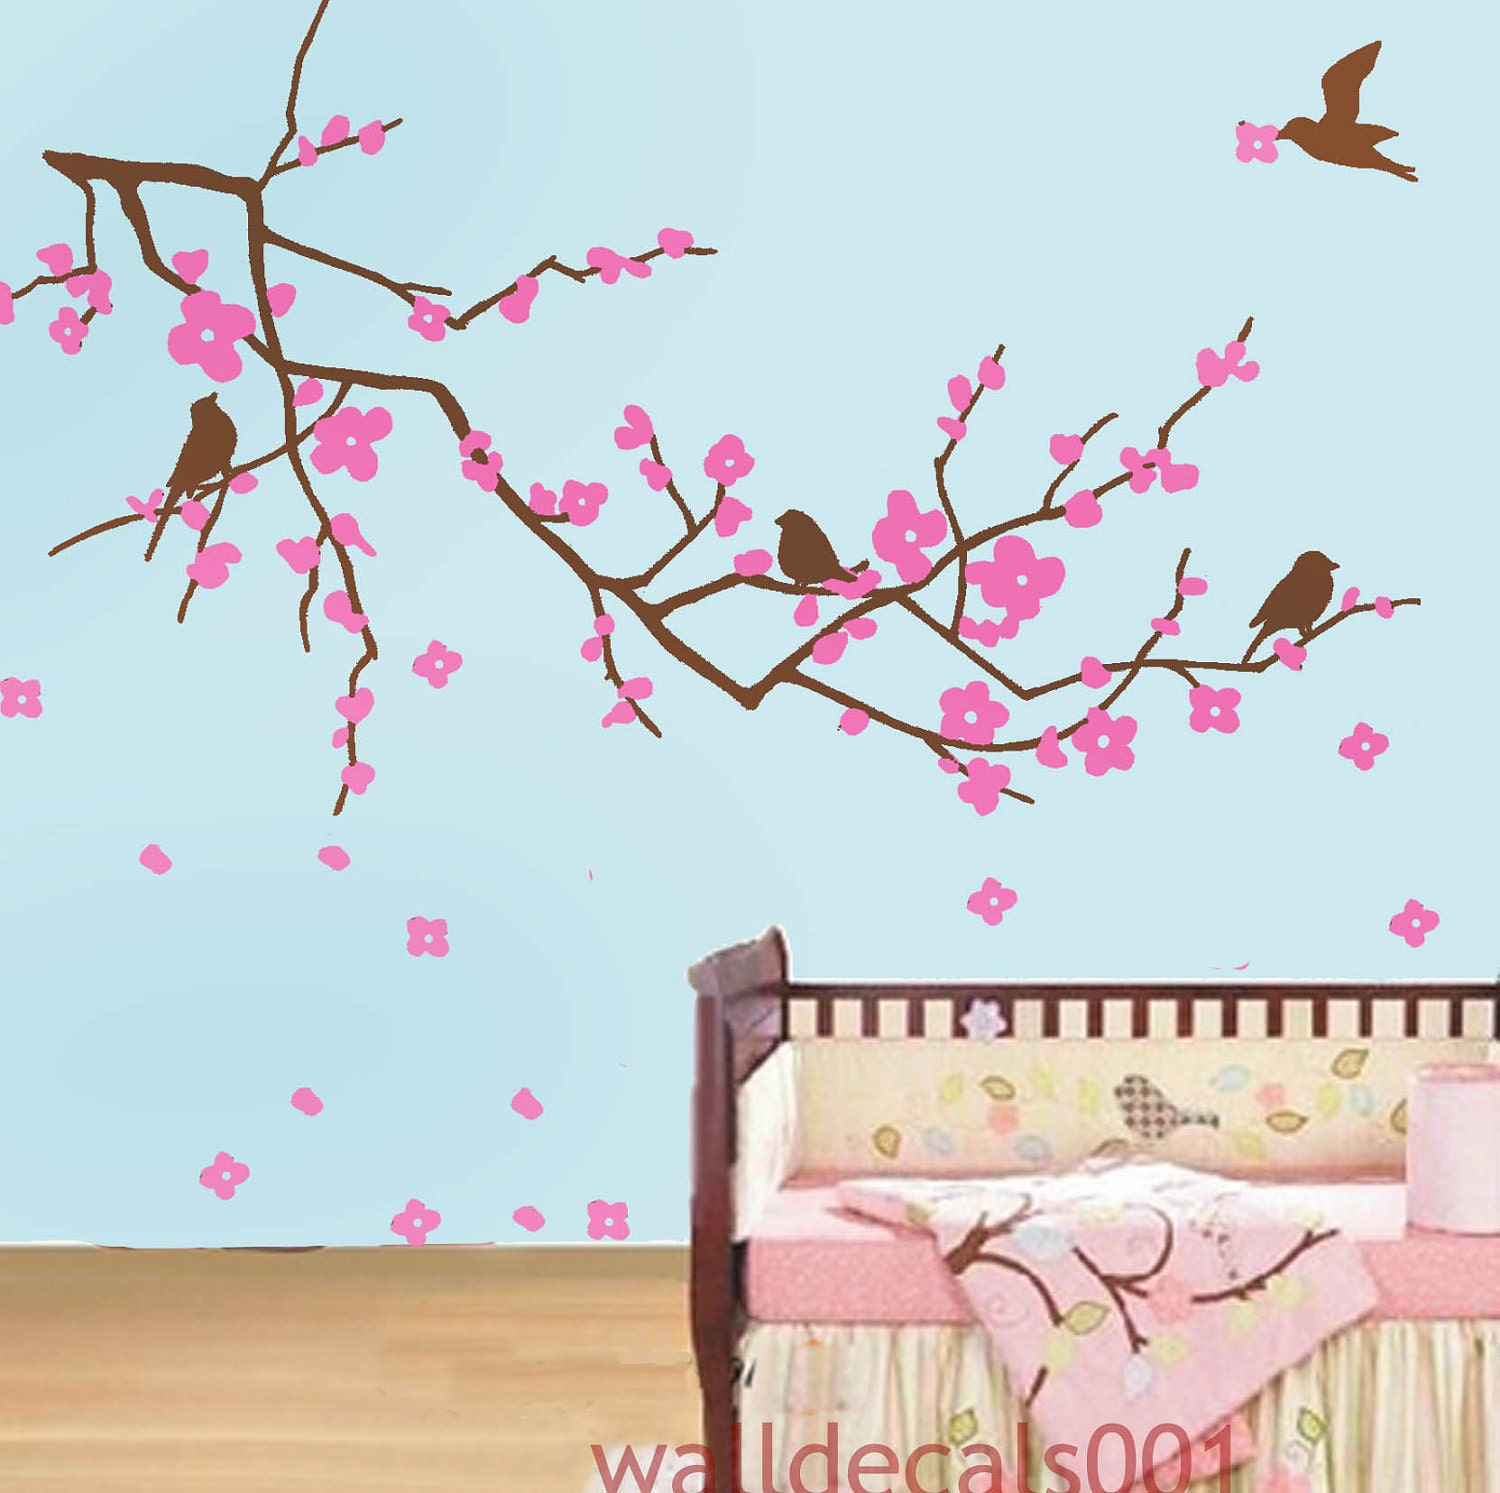 Wall Art Decals Cherry Blossom : Wall decals cherry blossom decal kids art baby